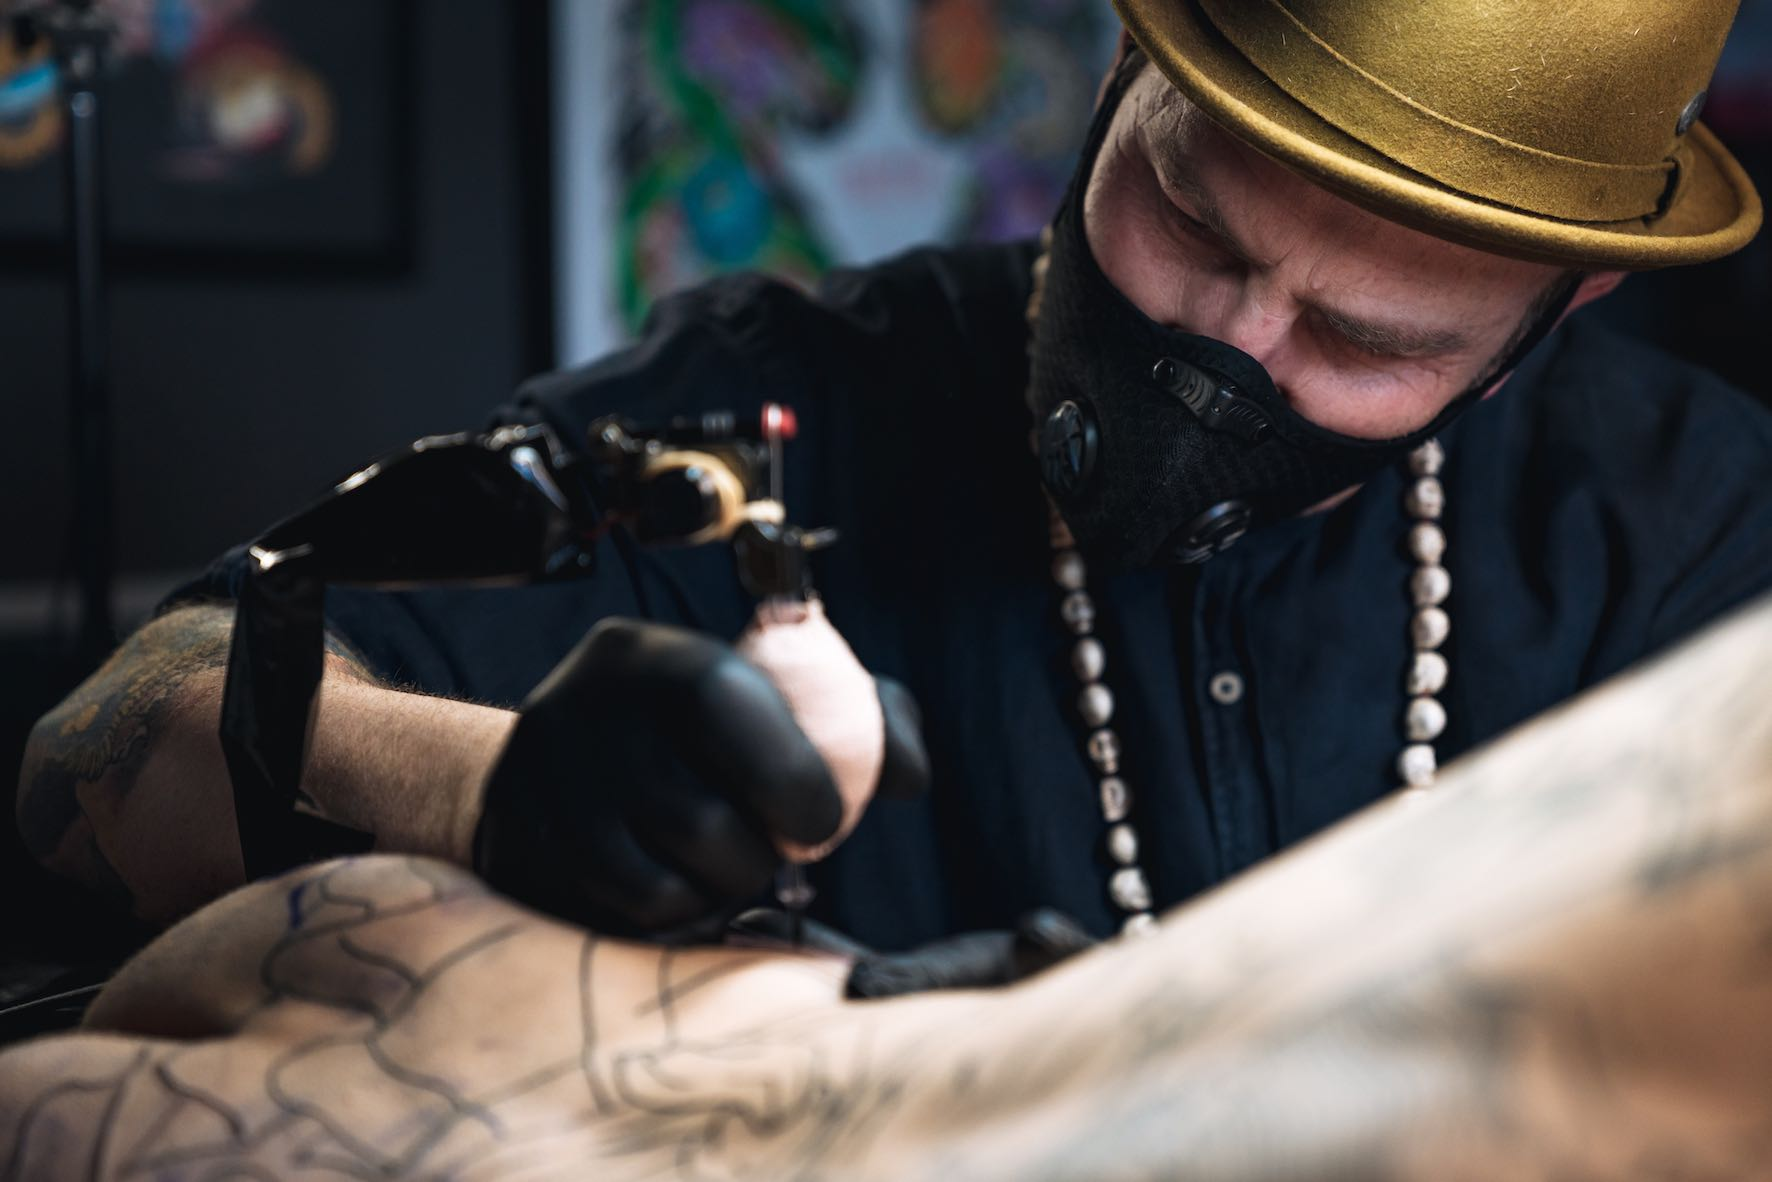 We talks tattoos with Daniel Feinberg